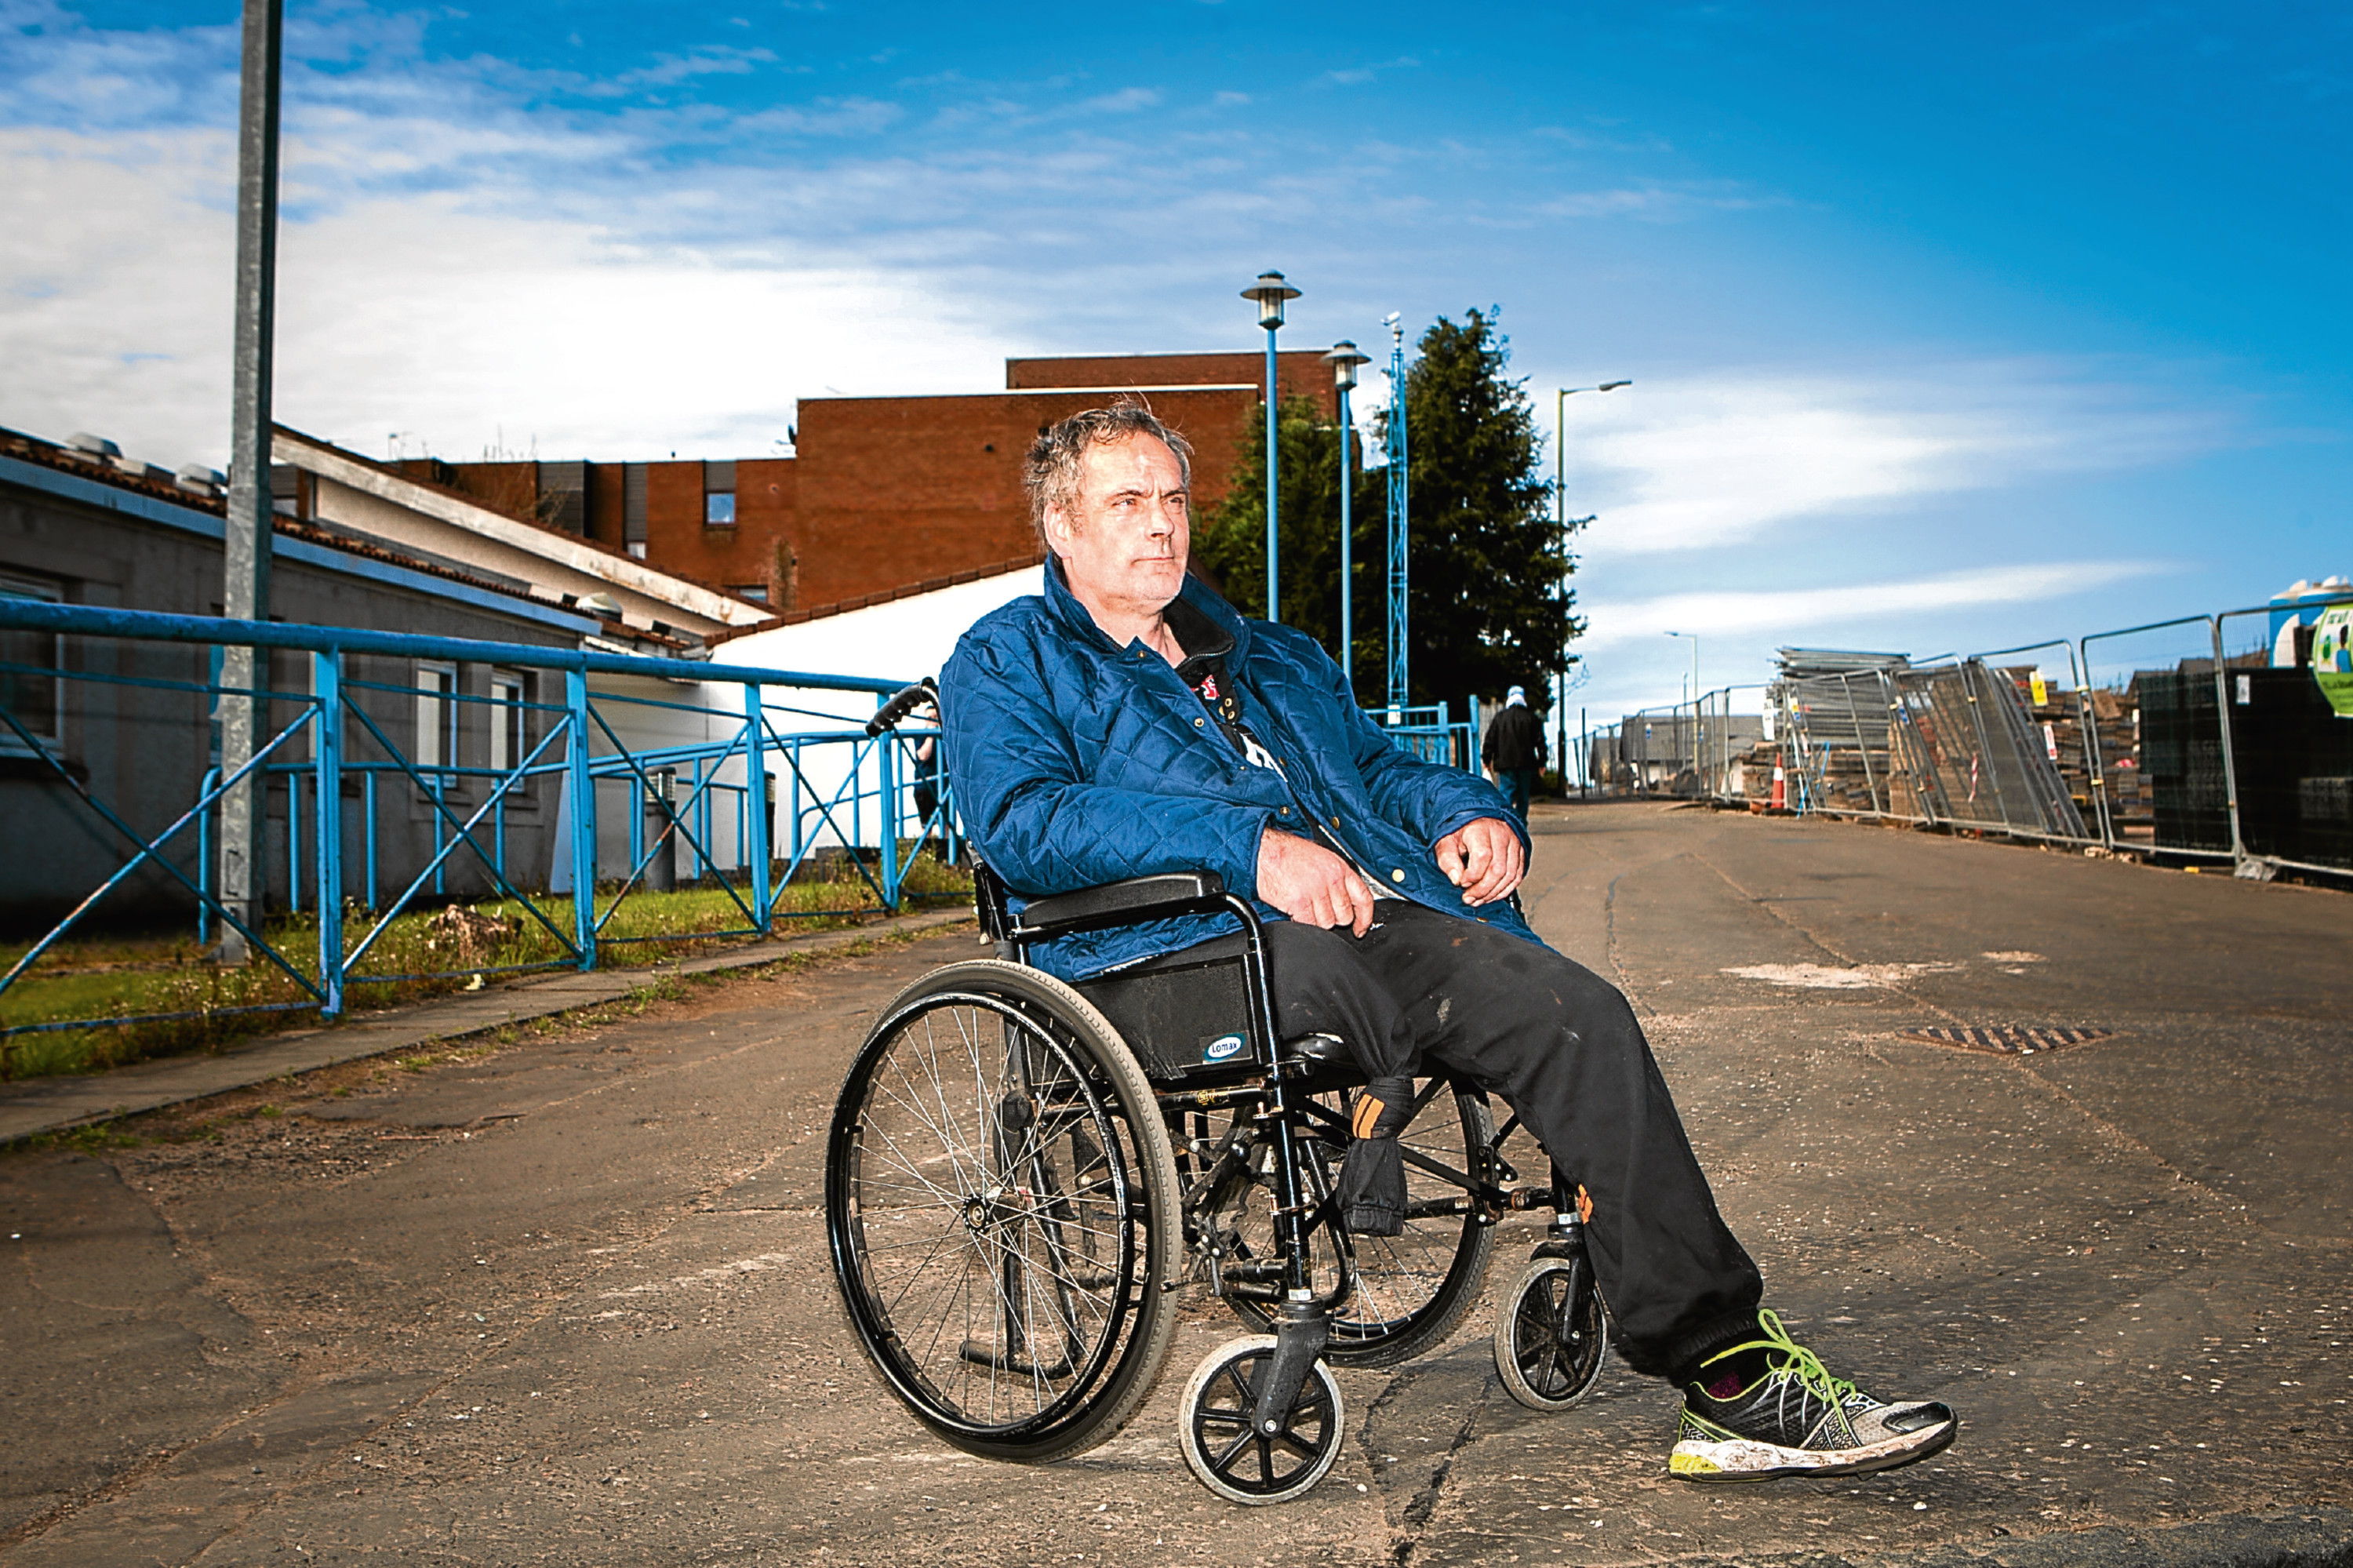 John Mottram, who lost his leg due to a blood clot three years ago, said he doesn't believe he will ever have his own home.